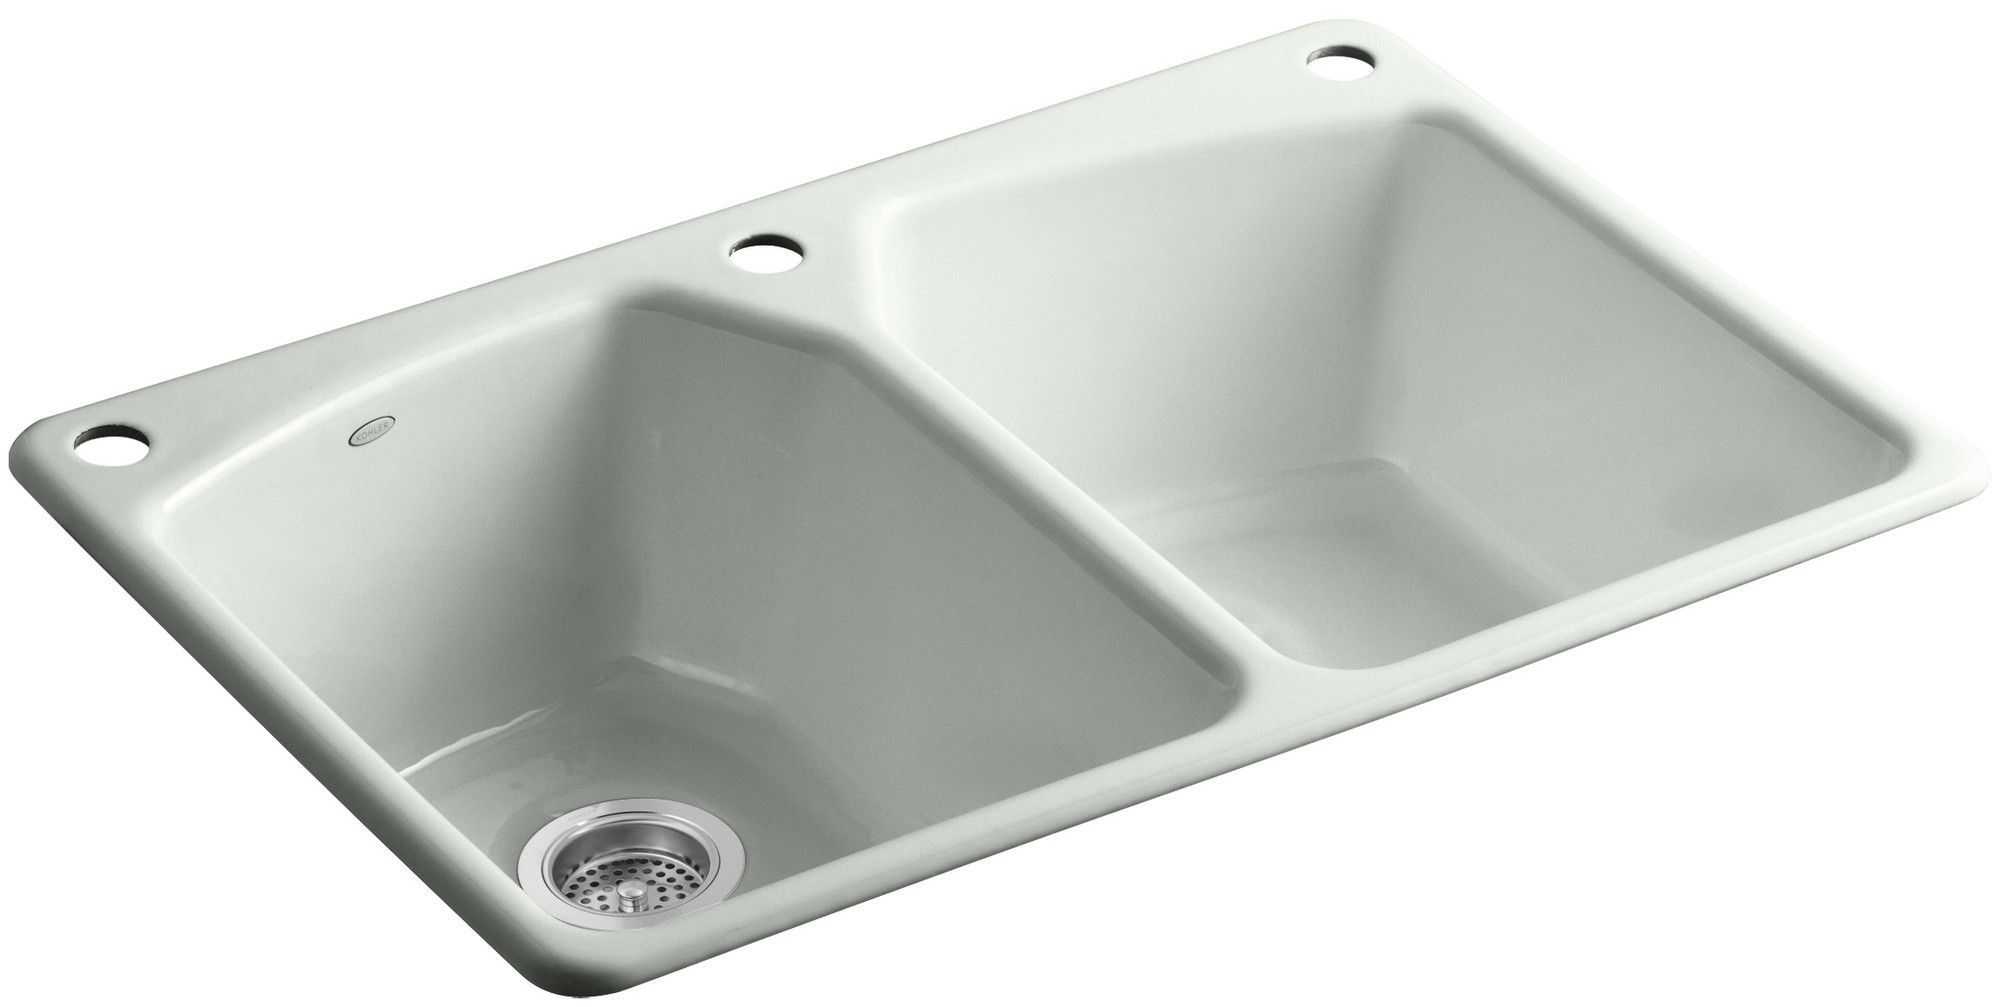 "Tanager 33"" x 22"" x 9-5/8"" Top-Mount Double-Equal Bowl Kitchen Sink with Three Holes: 1 Faucet Hole and Right Hand and Left Hand Accessory Holes"